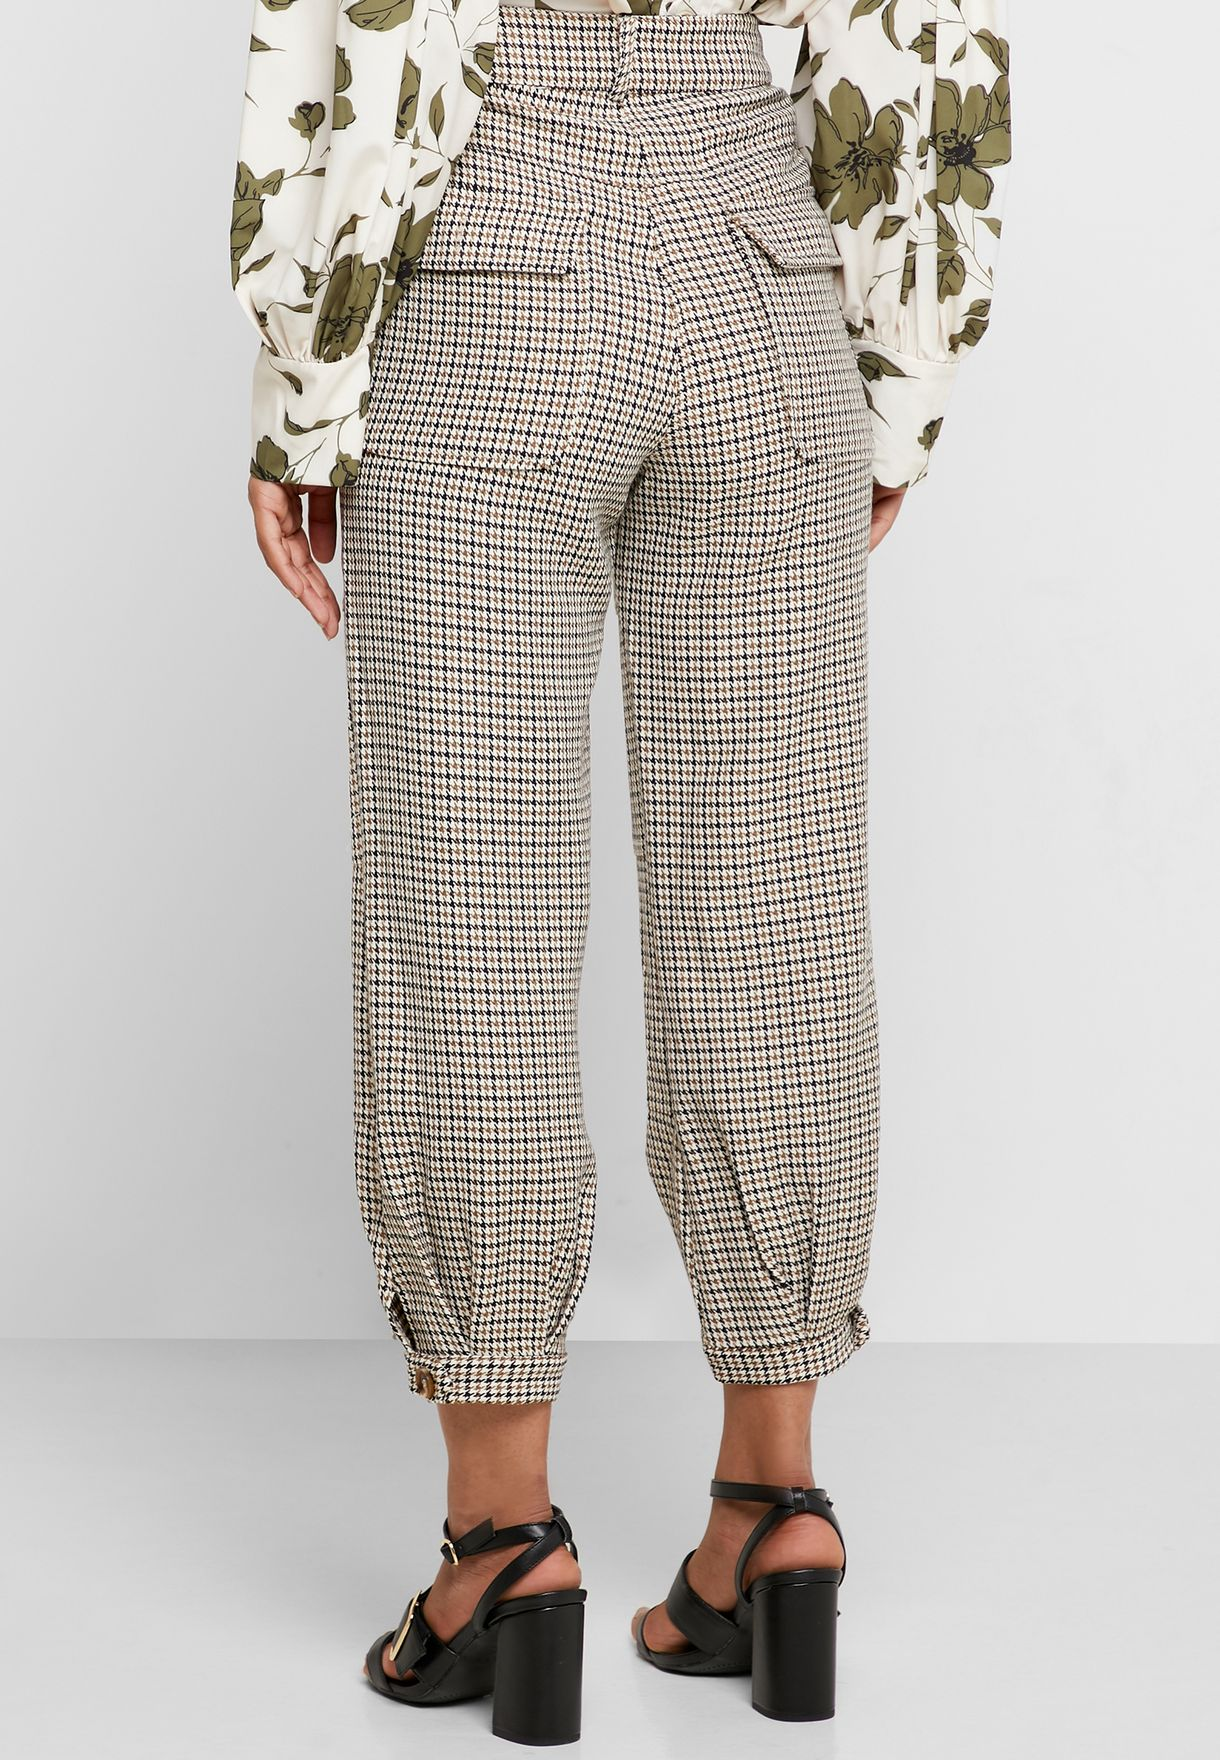 Ankle Grazer Cuffed Printed Pants